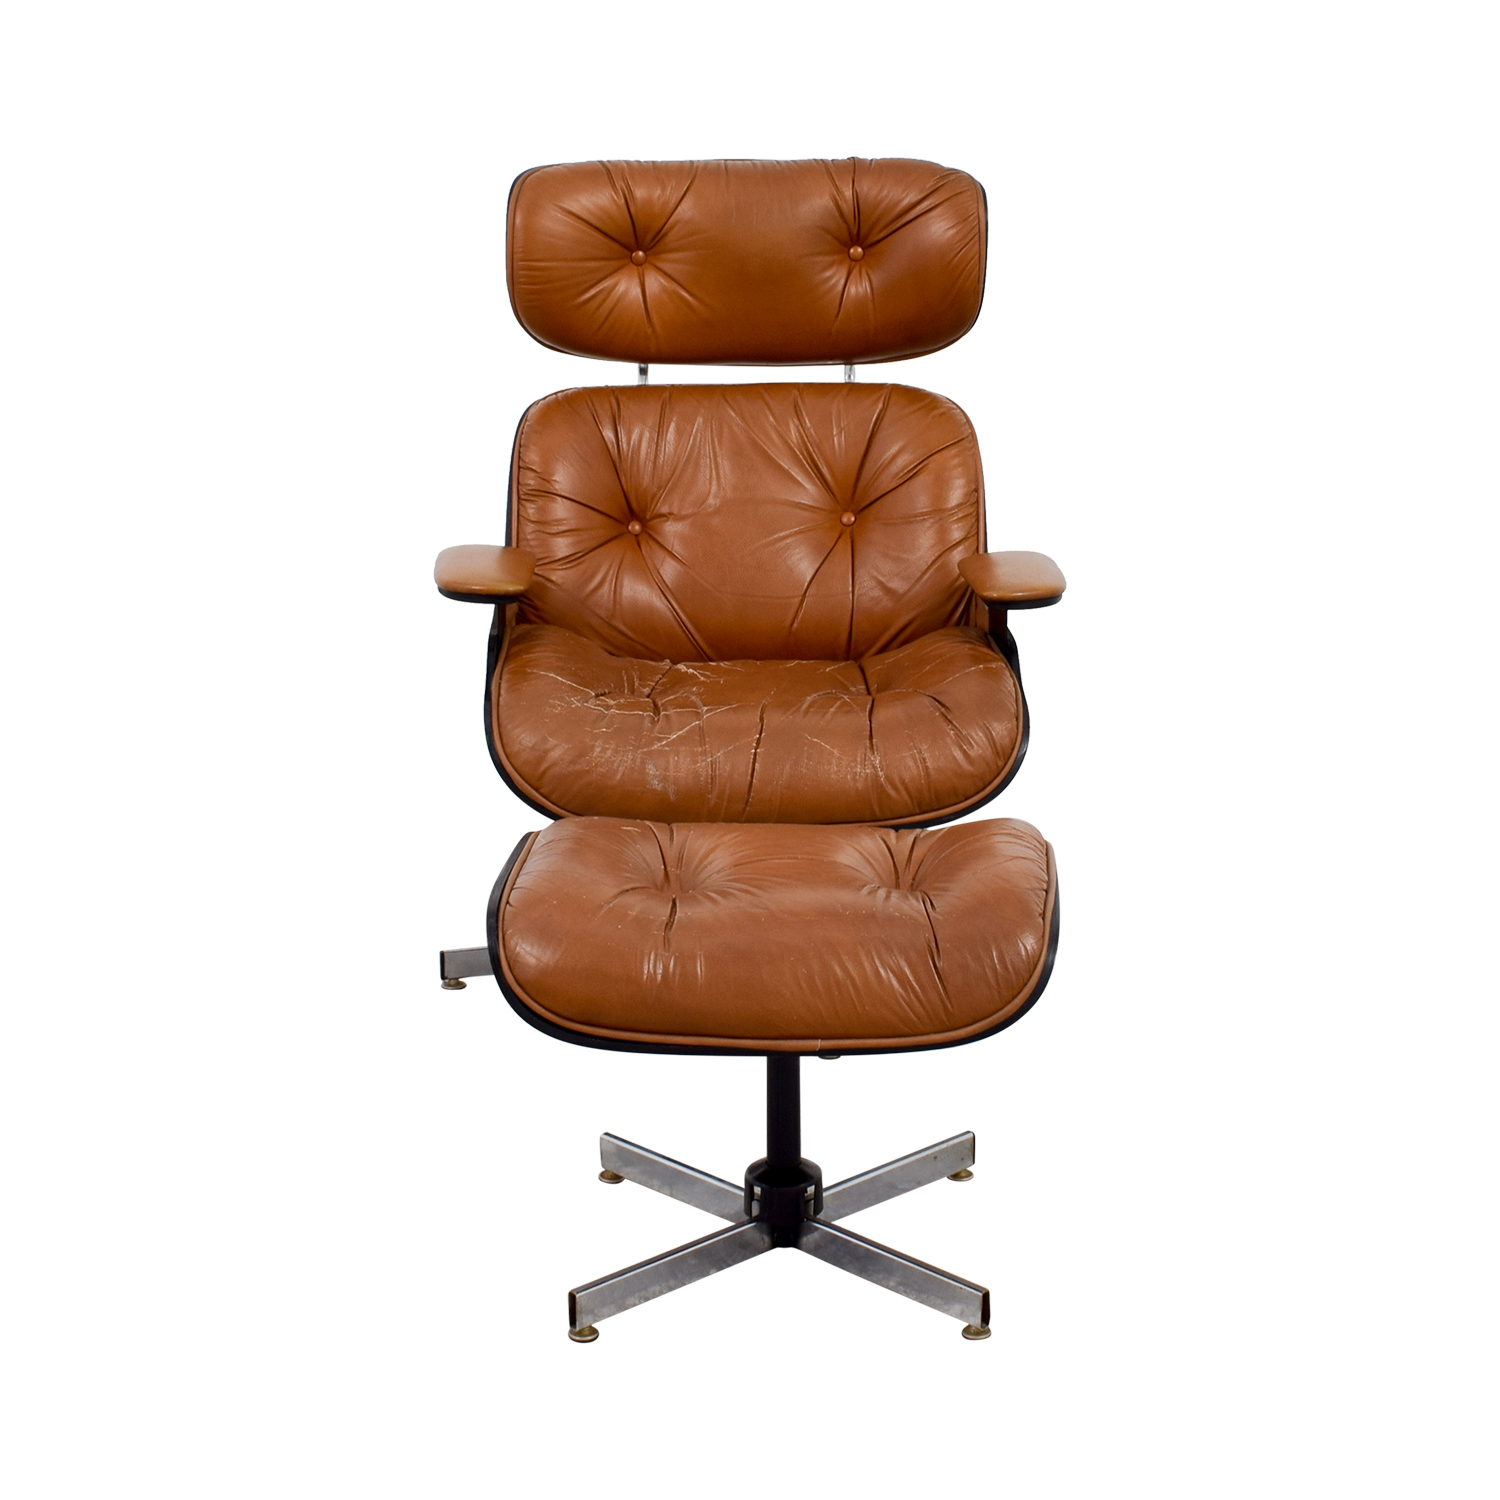 Eames Replica Leather Chair with Ottoman used